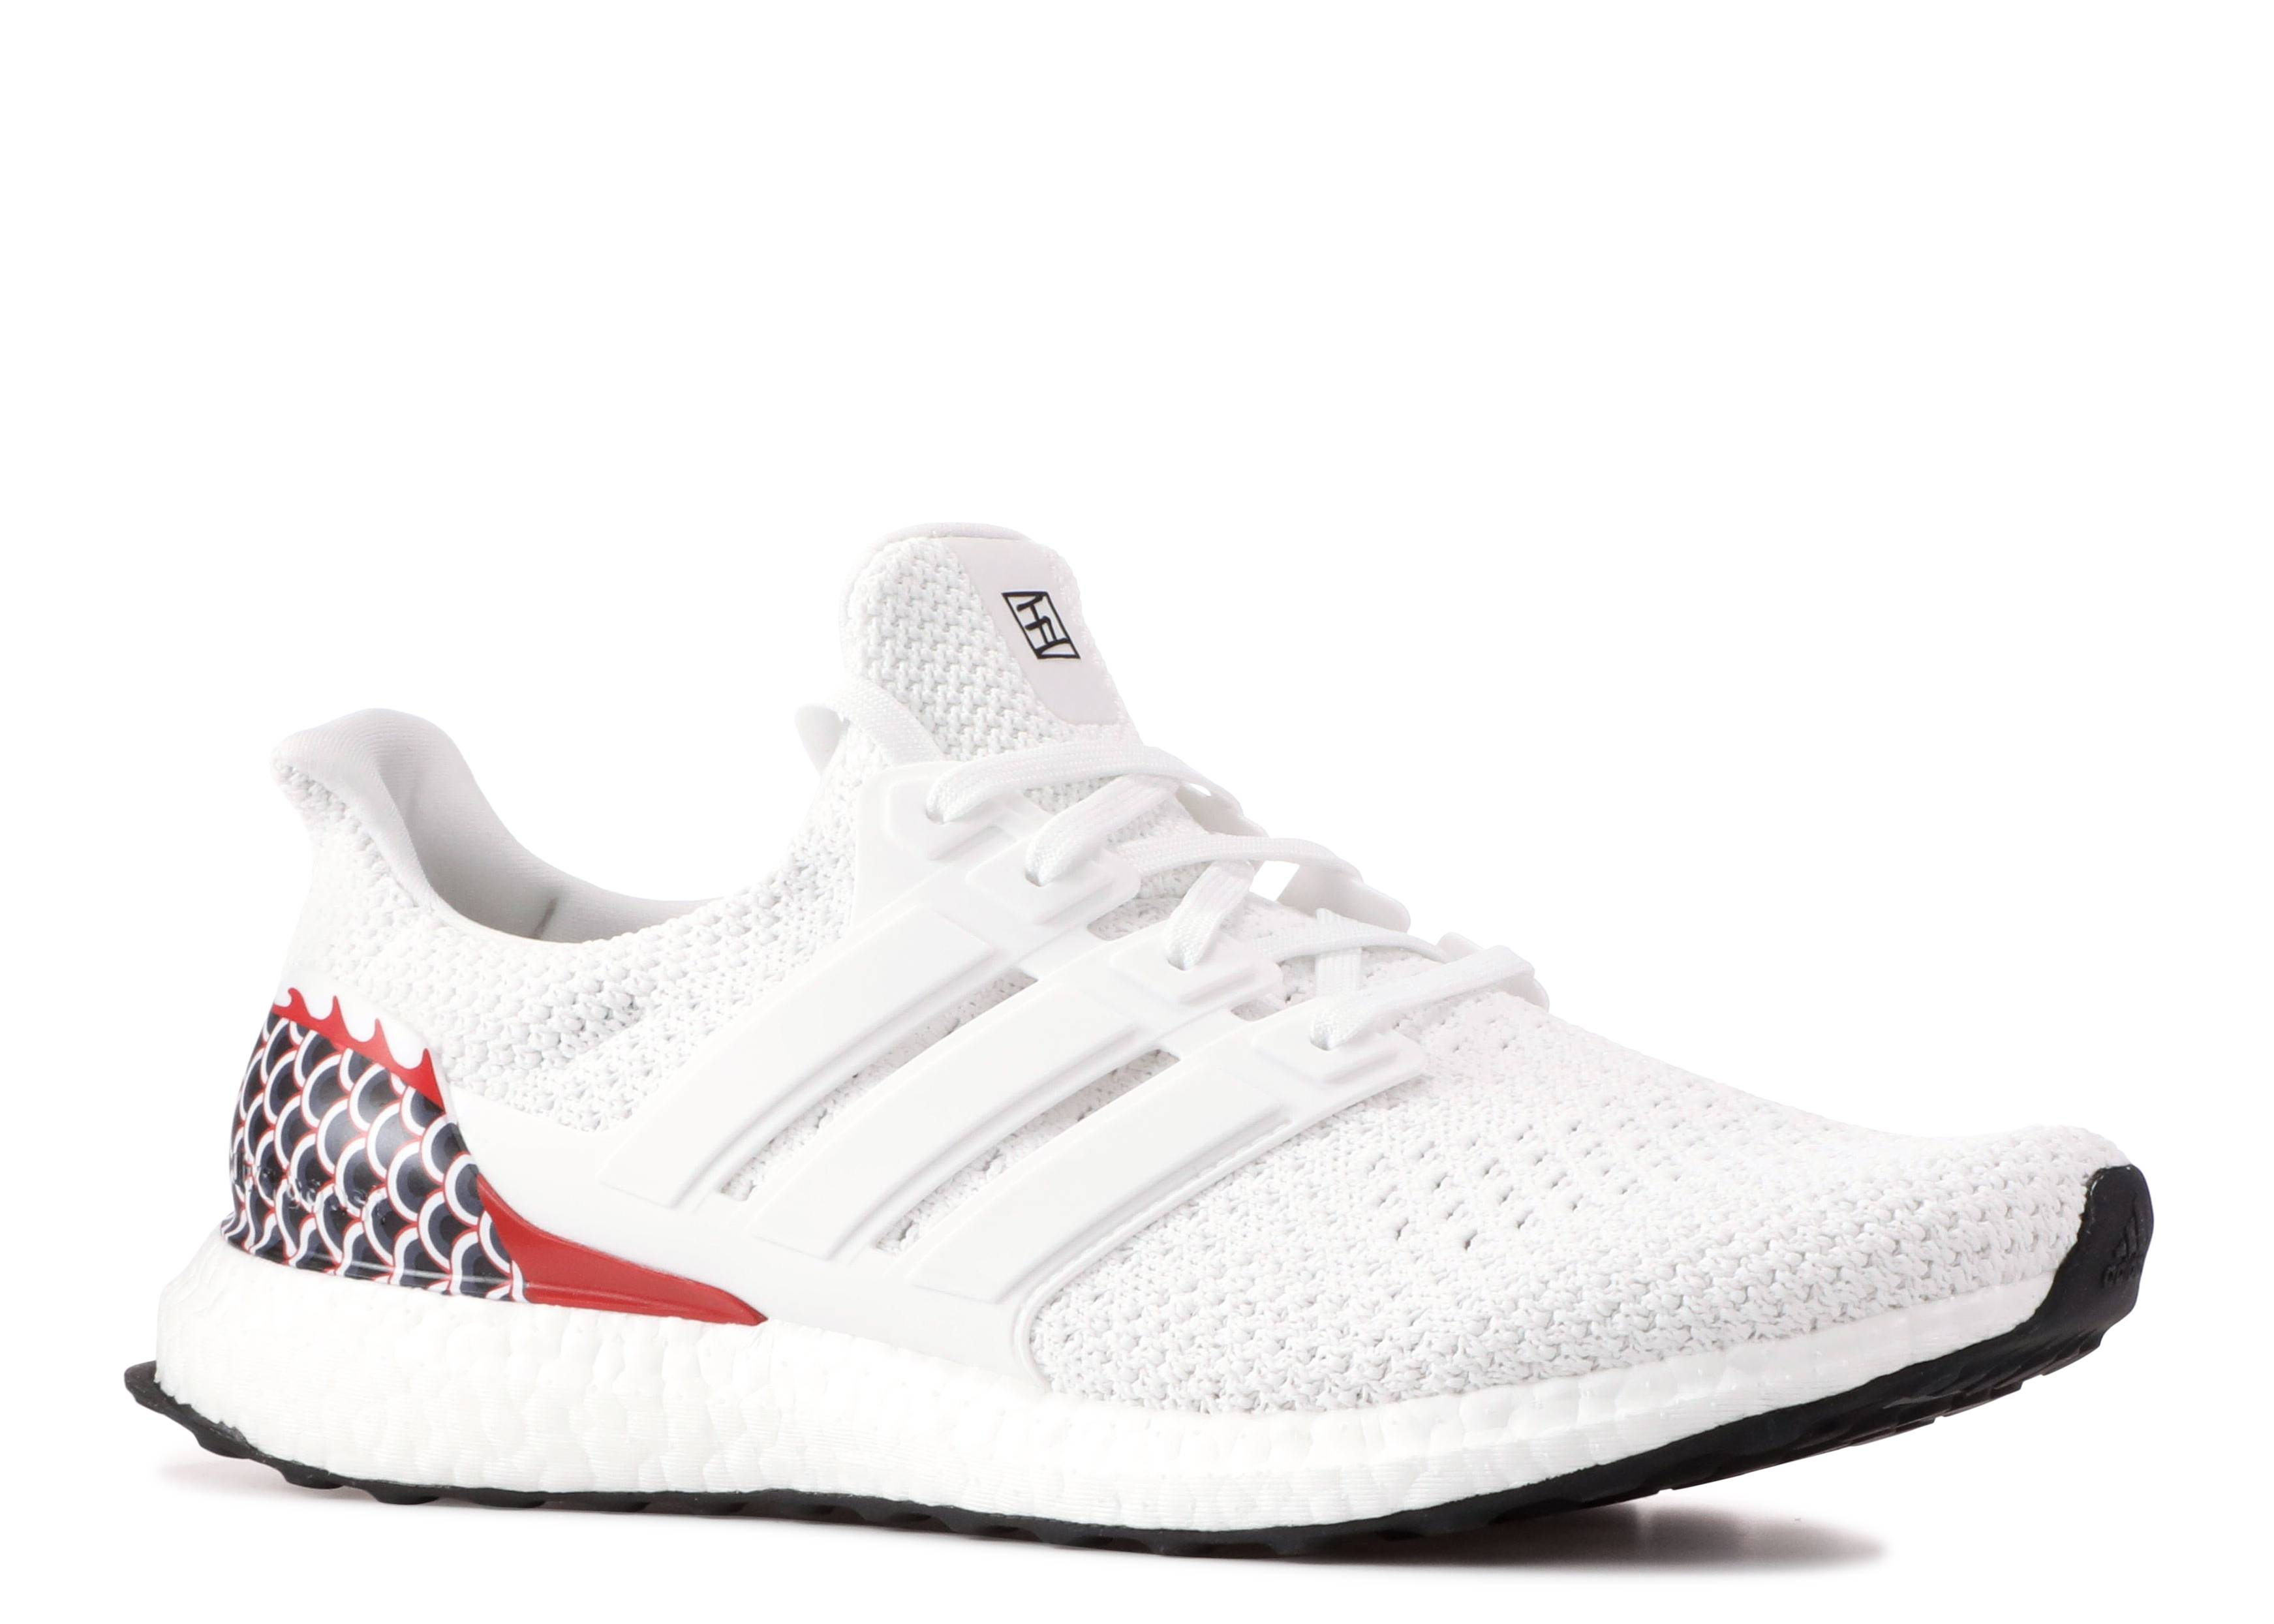 7d5715189 Ultra Boost Clima Dragon Boat - Adidas - ee7150 - white red multi ...